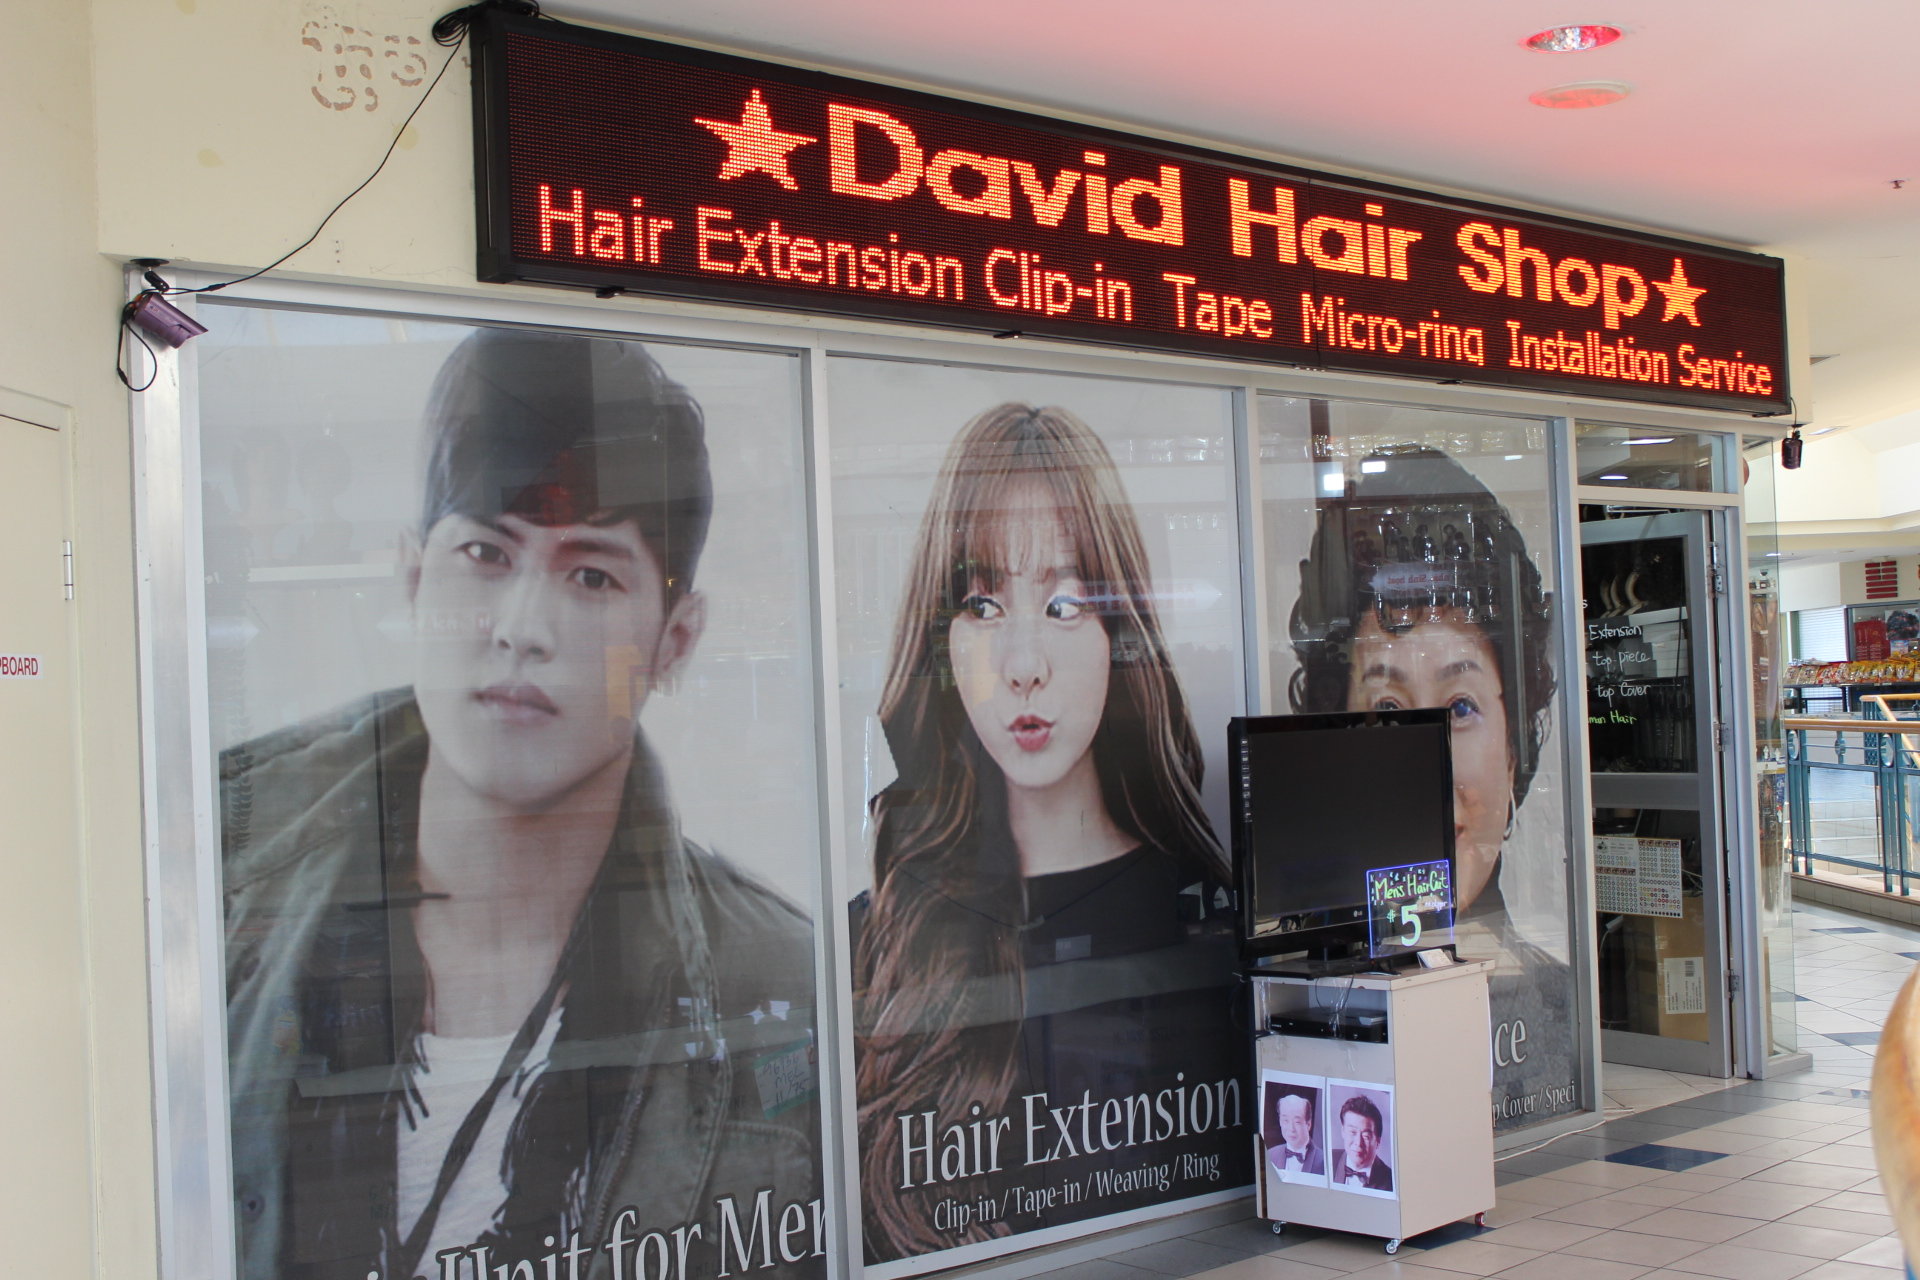 babda2ec6dd Spring Vale Shopping Centre - David's Hair Shop